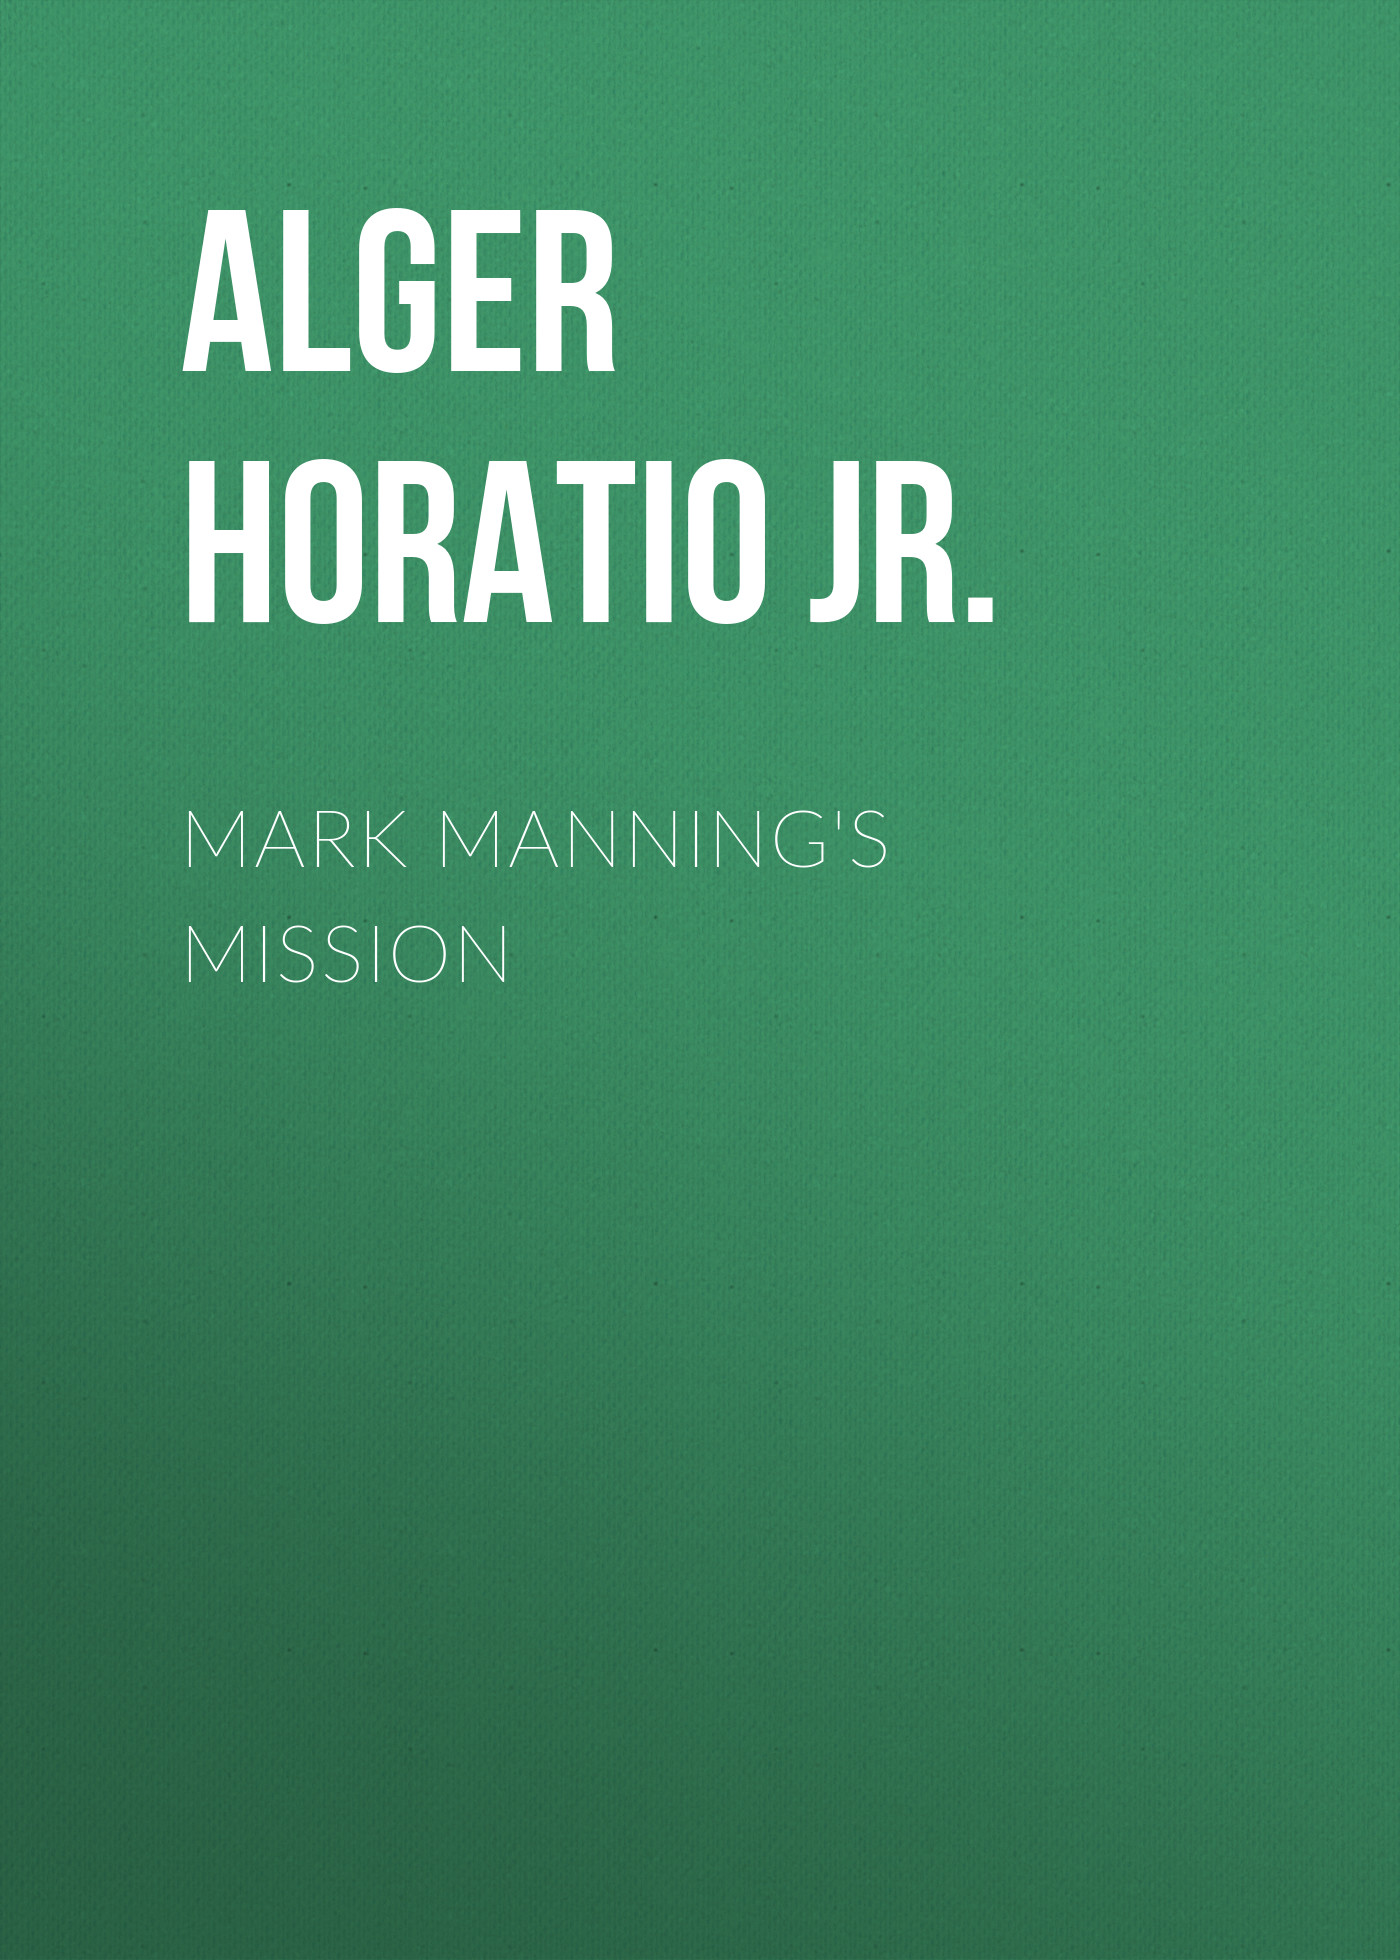 Alger Horatio Jr. Mark Manning's Mission